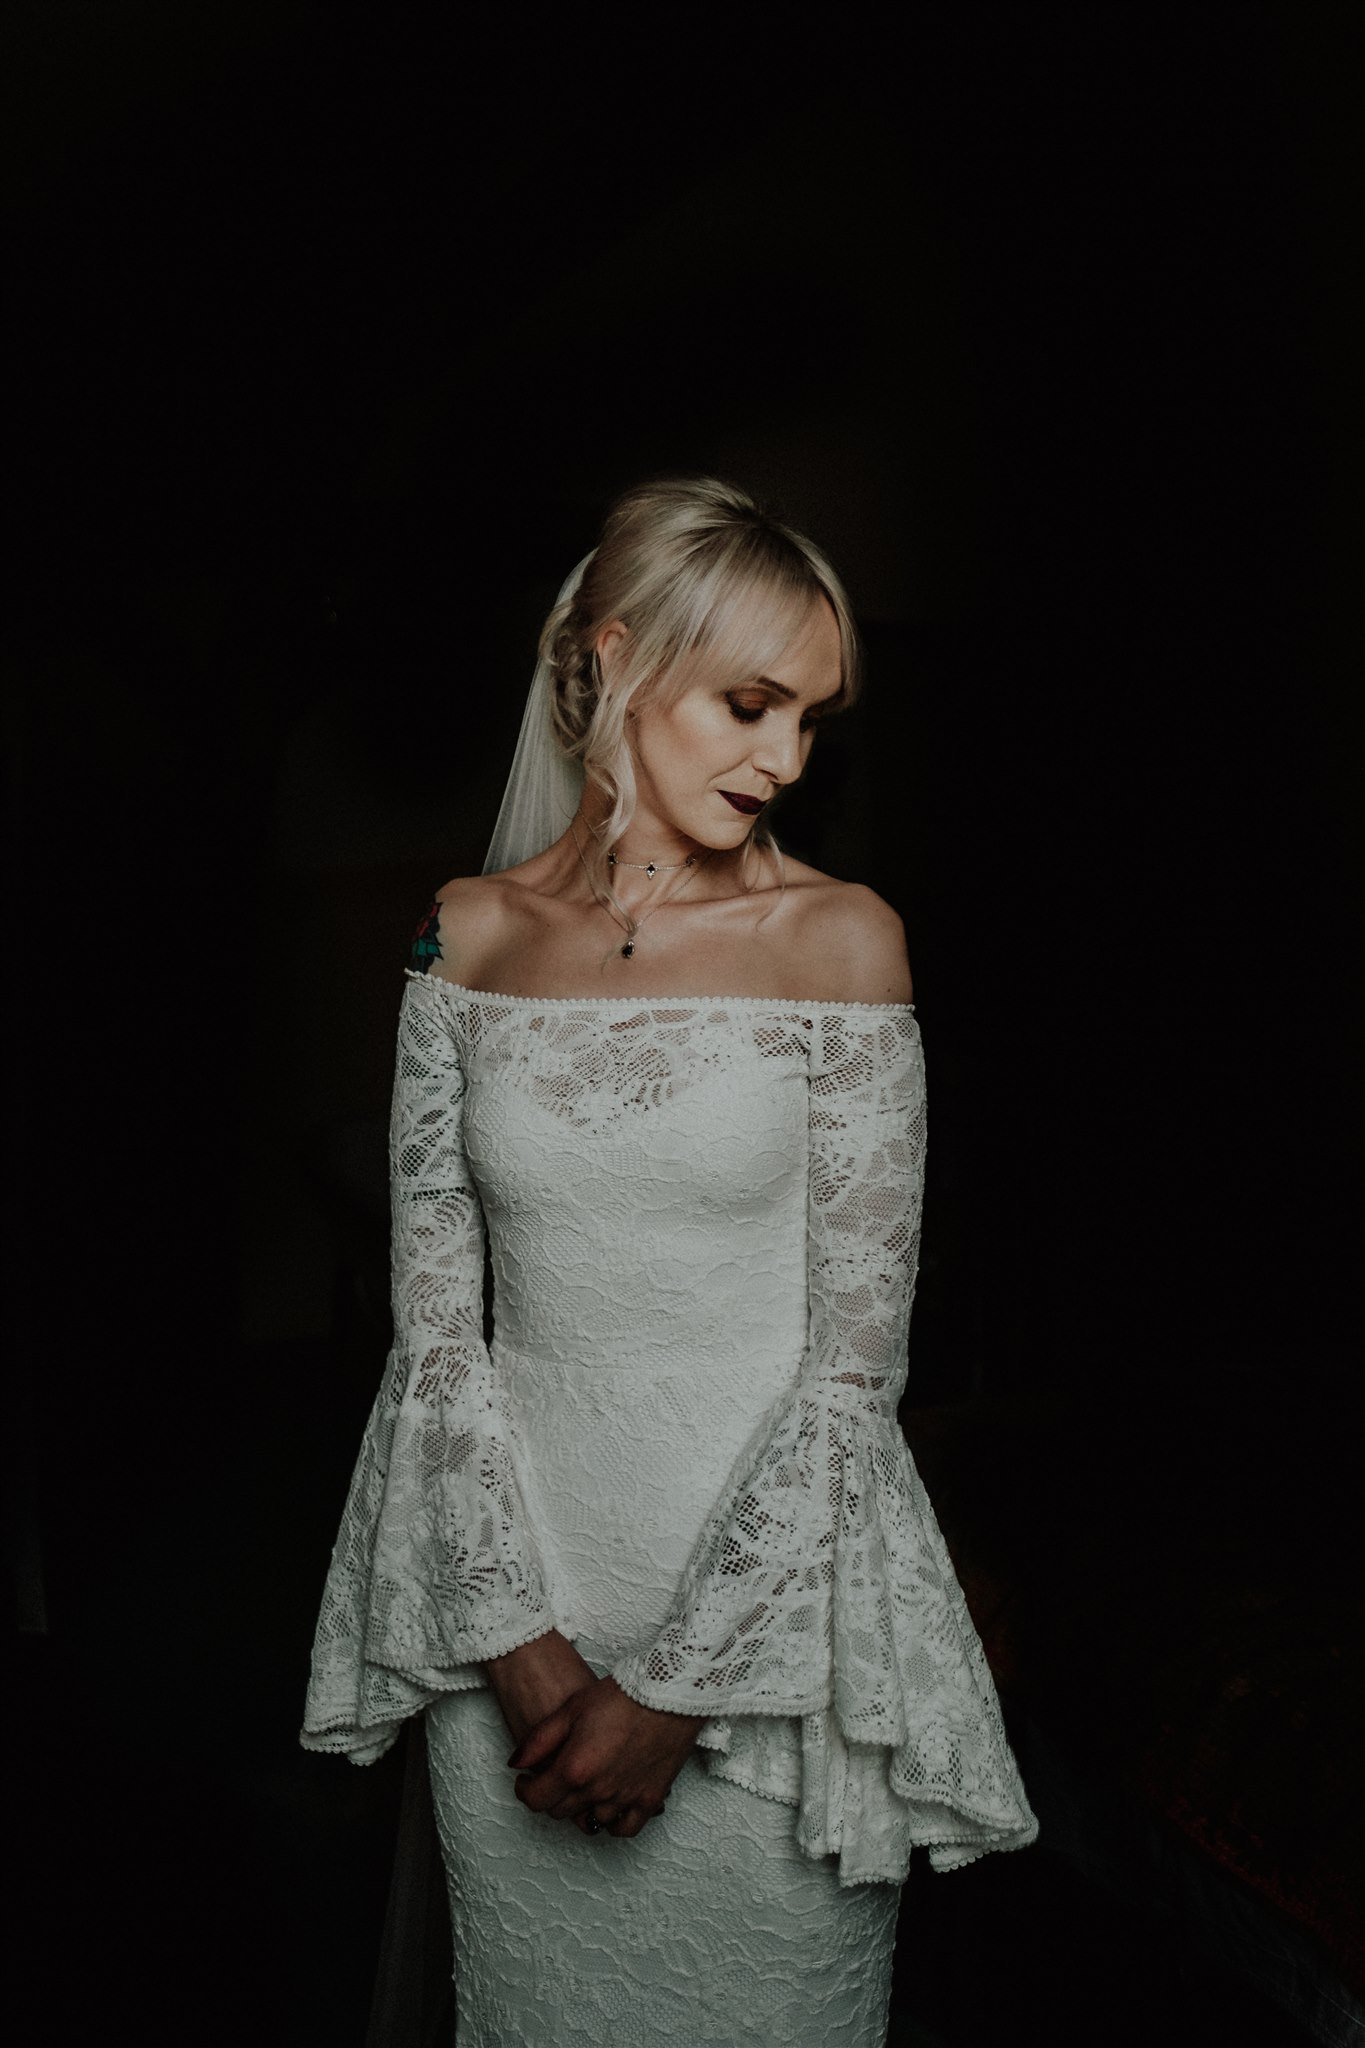 The bride was an off the shoulder lace sheath wedding dress with bell sleeves and a dark lipstick